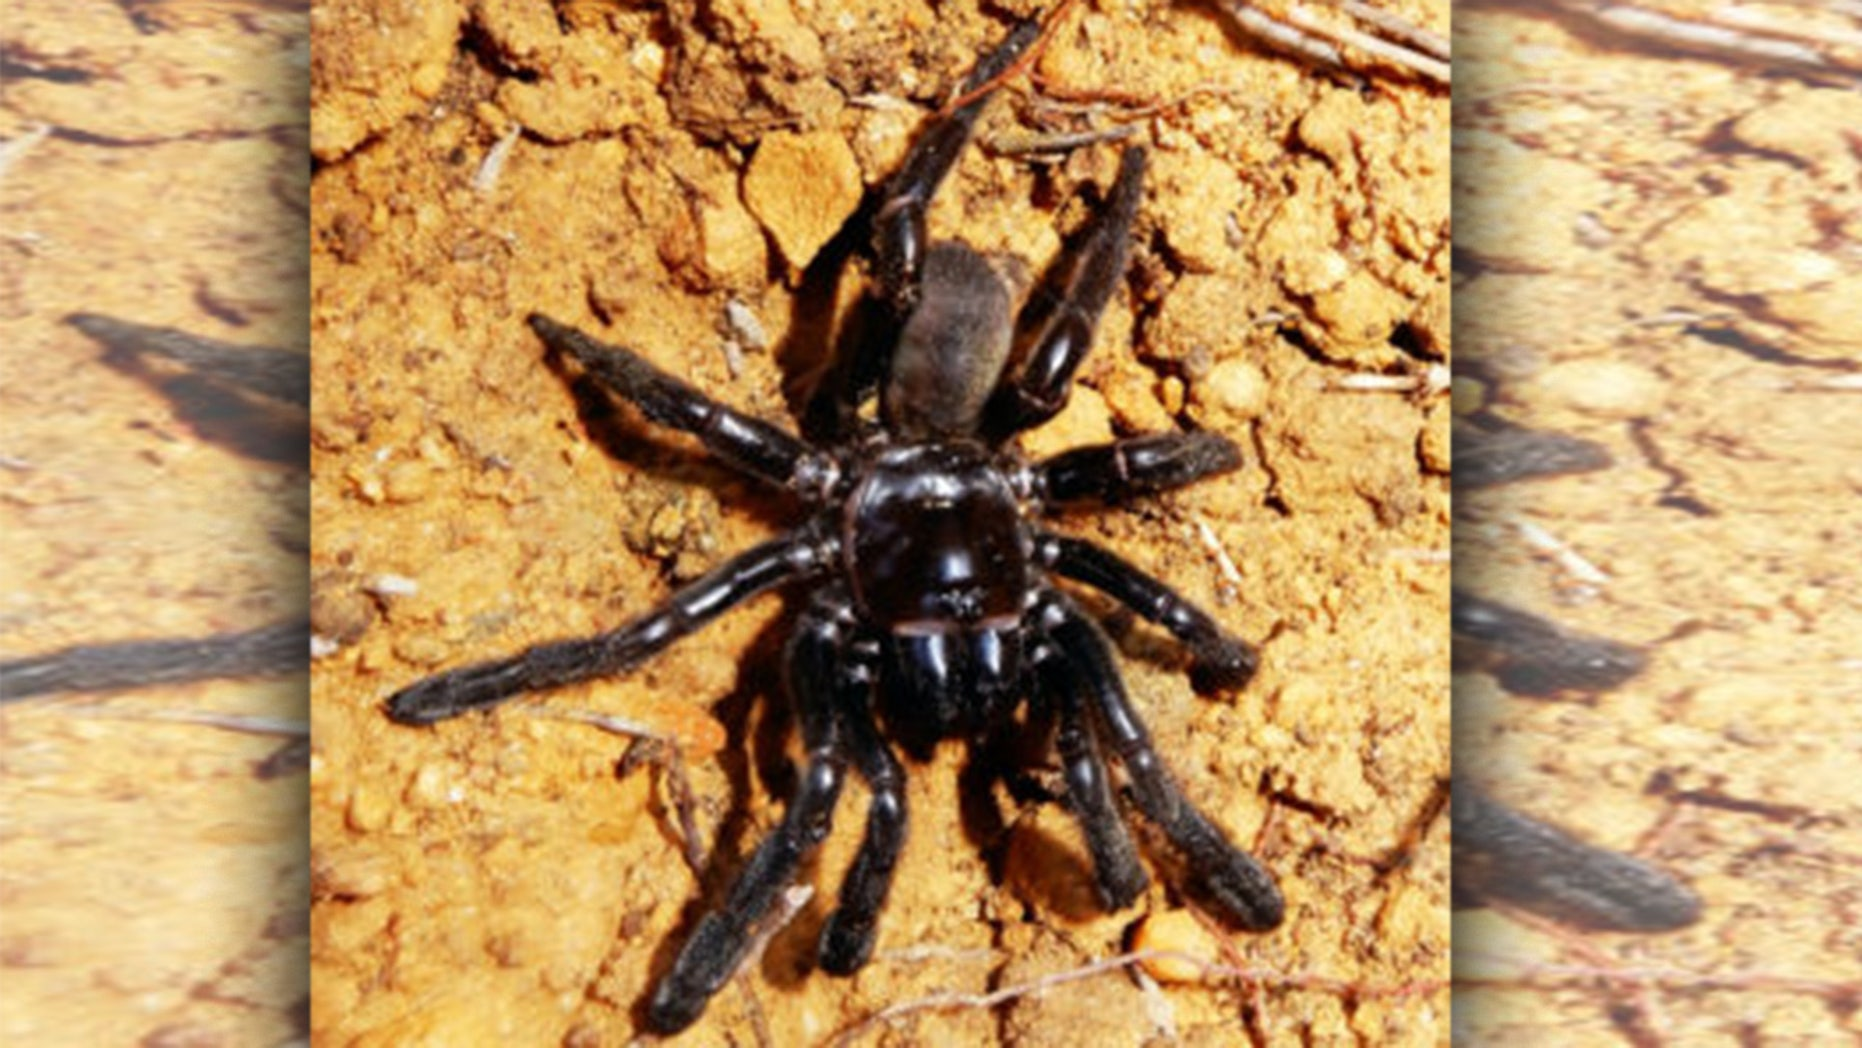 Researchers said Number 16, a Giaus Villosus trapdoor spider was the world's oldest spider when she died at 43.